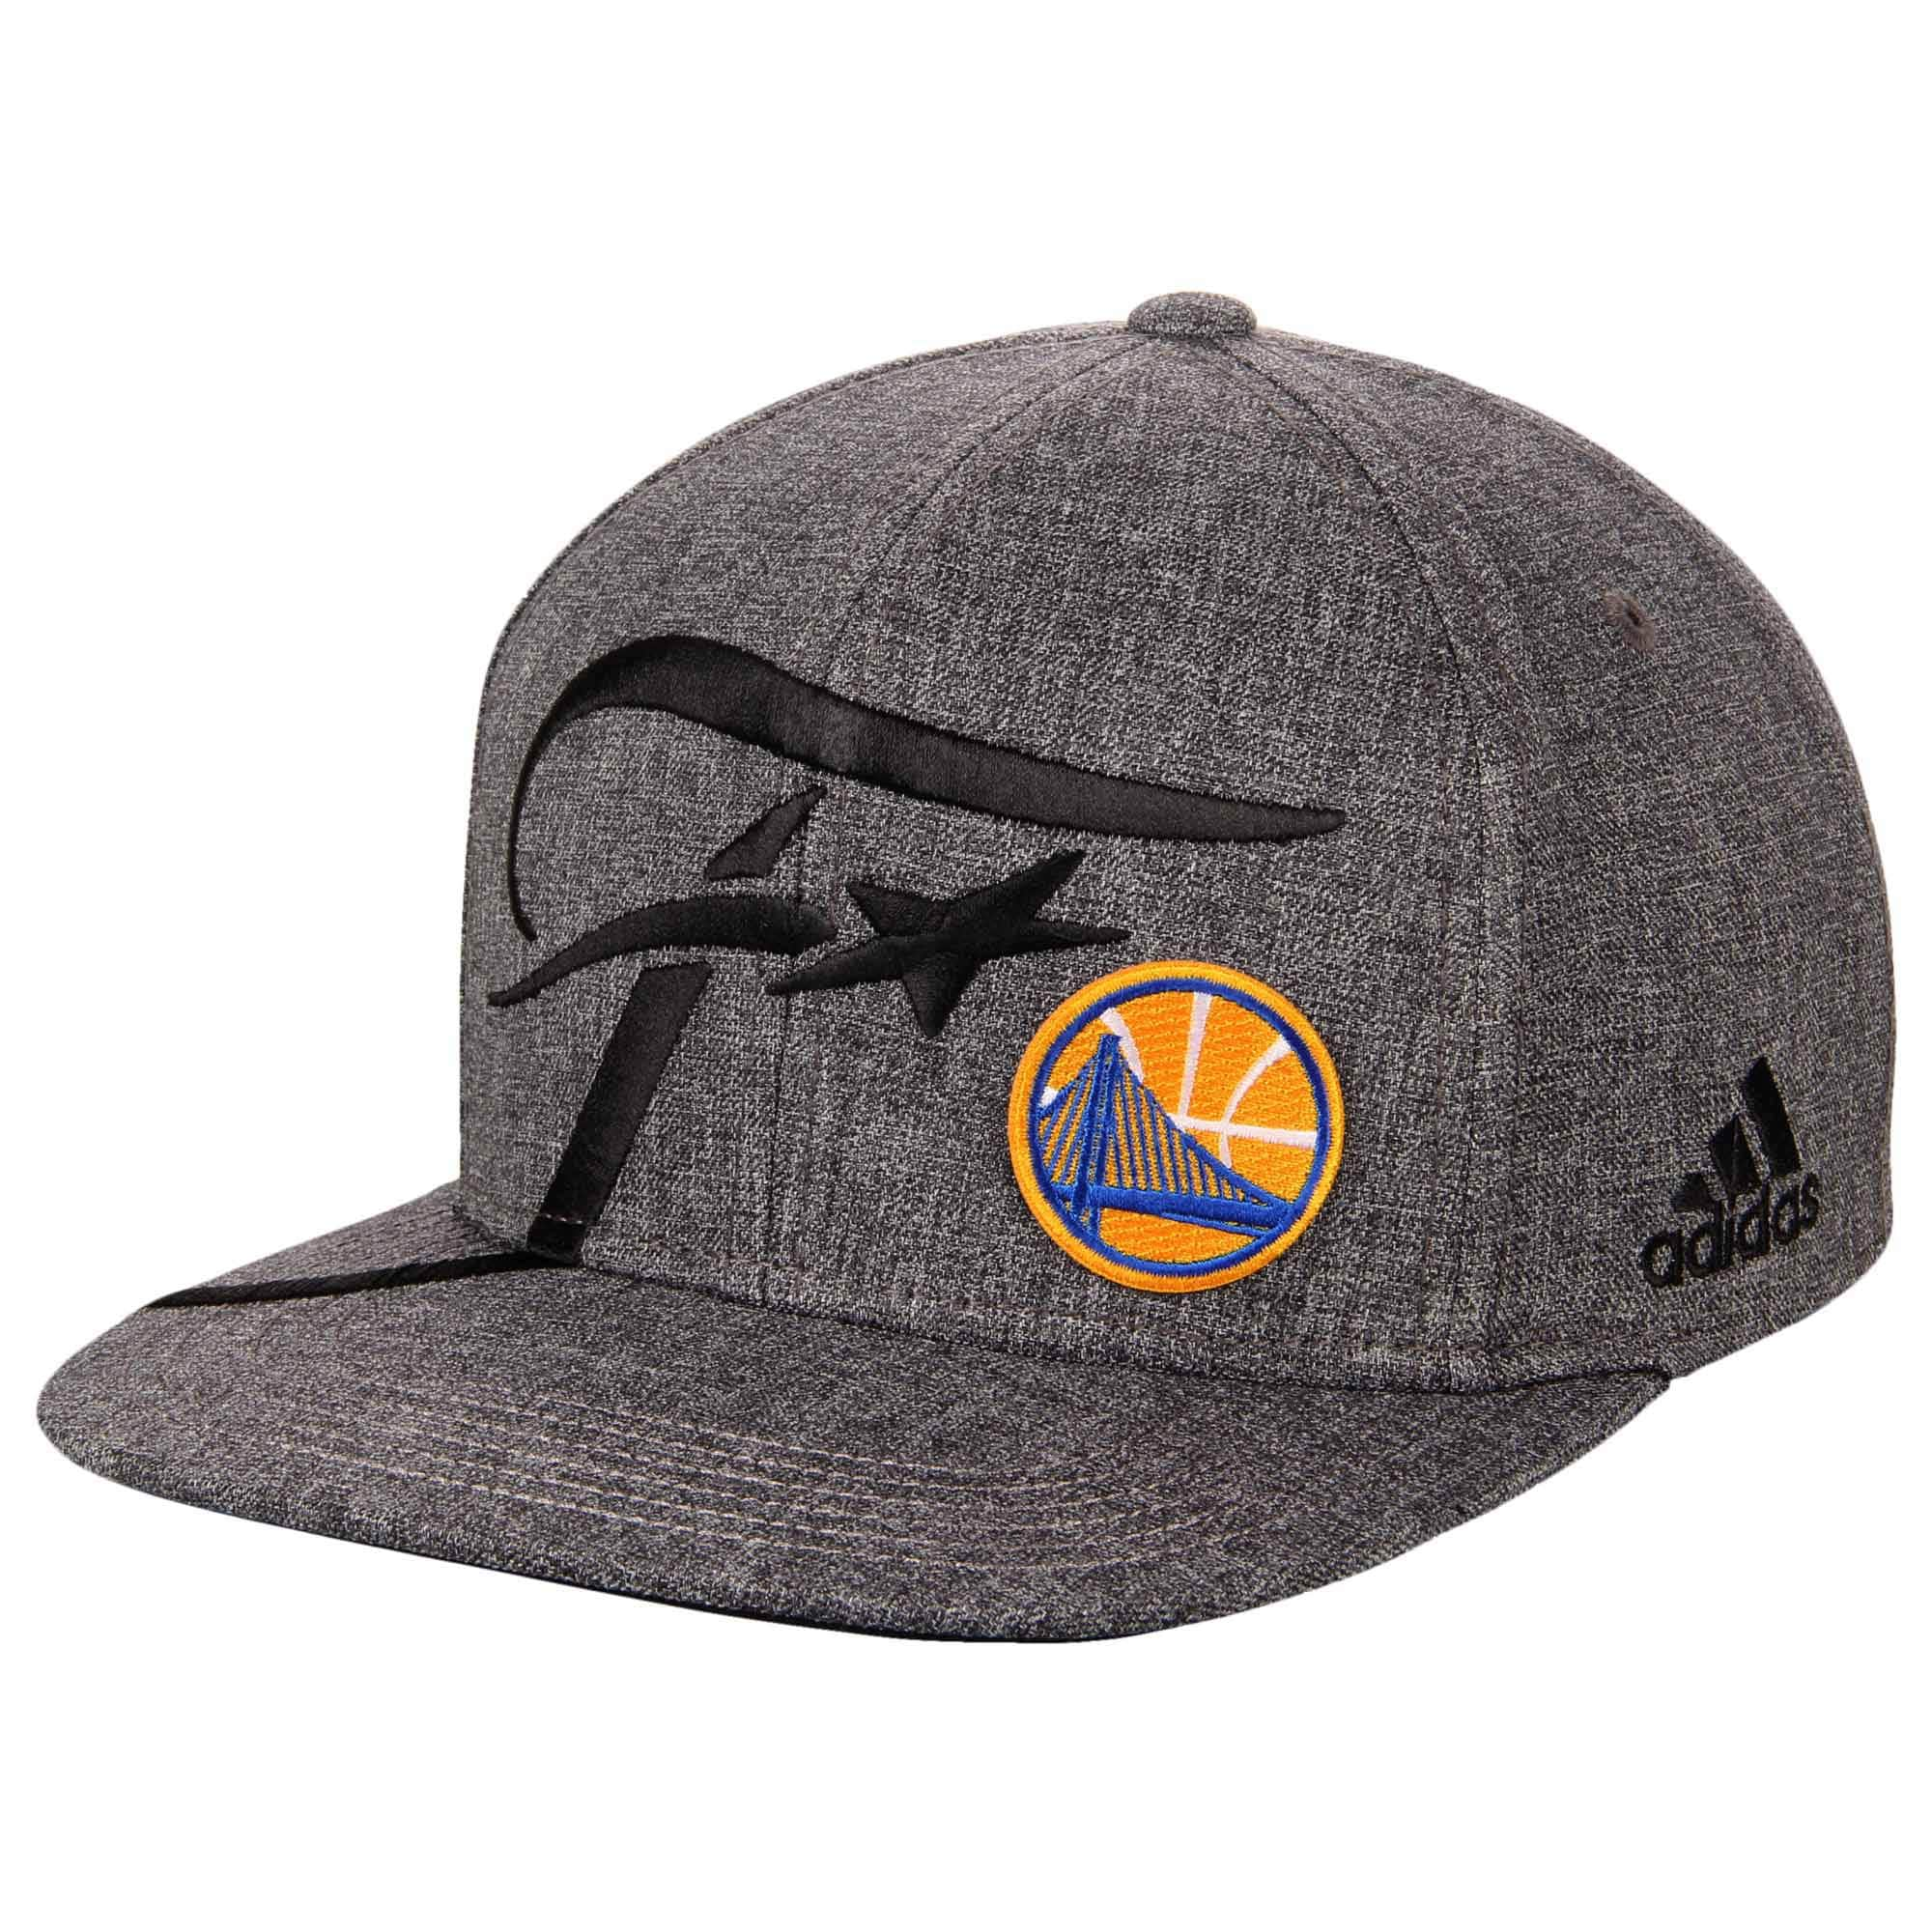 Golden State Warriors adidas 2016 Western Conference Champions Locker Room Adjustable Snapback Hat - Heathered Gray